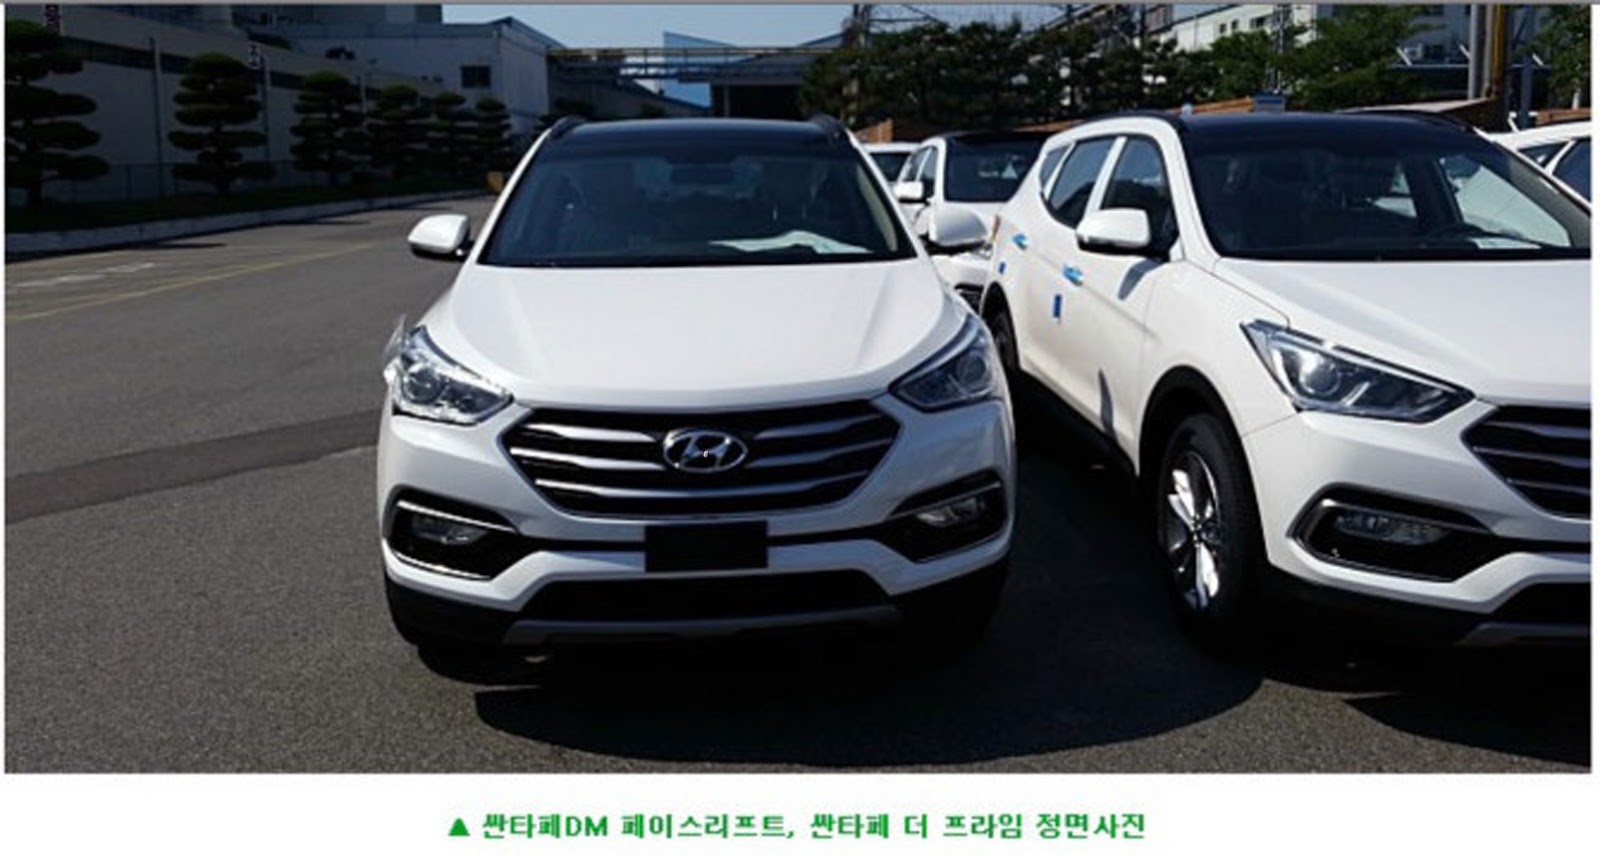 2016 hyundai santa fe facelift nabbed undisguised in korea carscoops. Black Bedroom Furniture Sets. Home Design Ideas